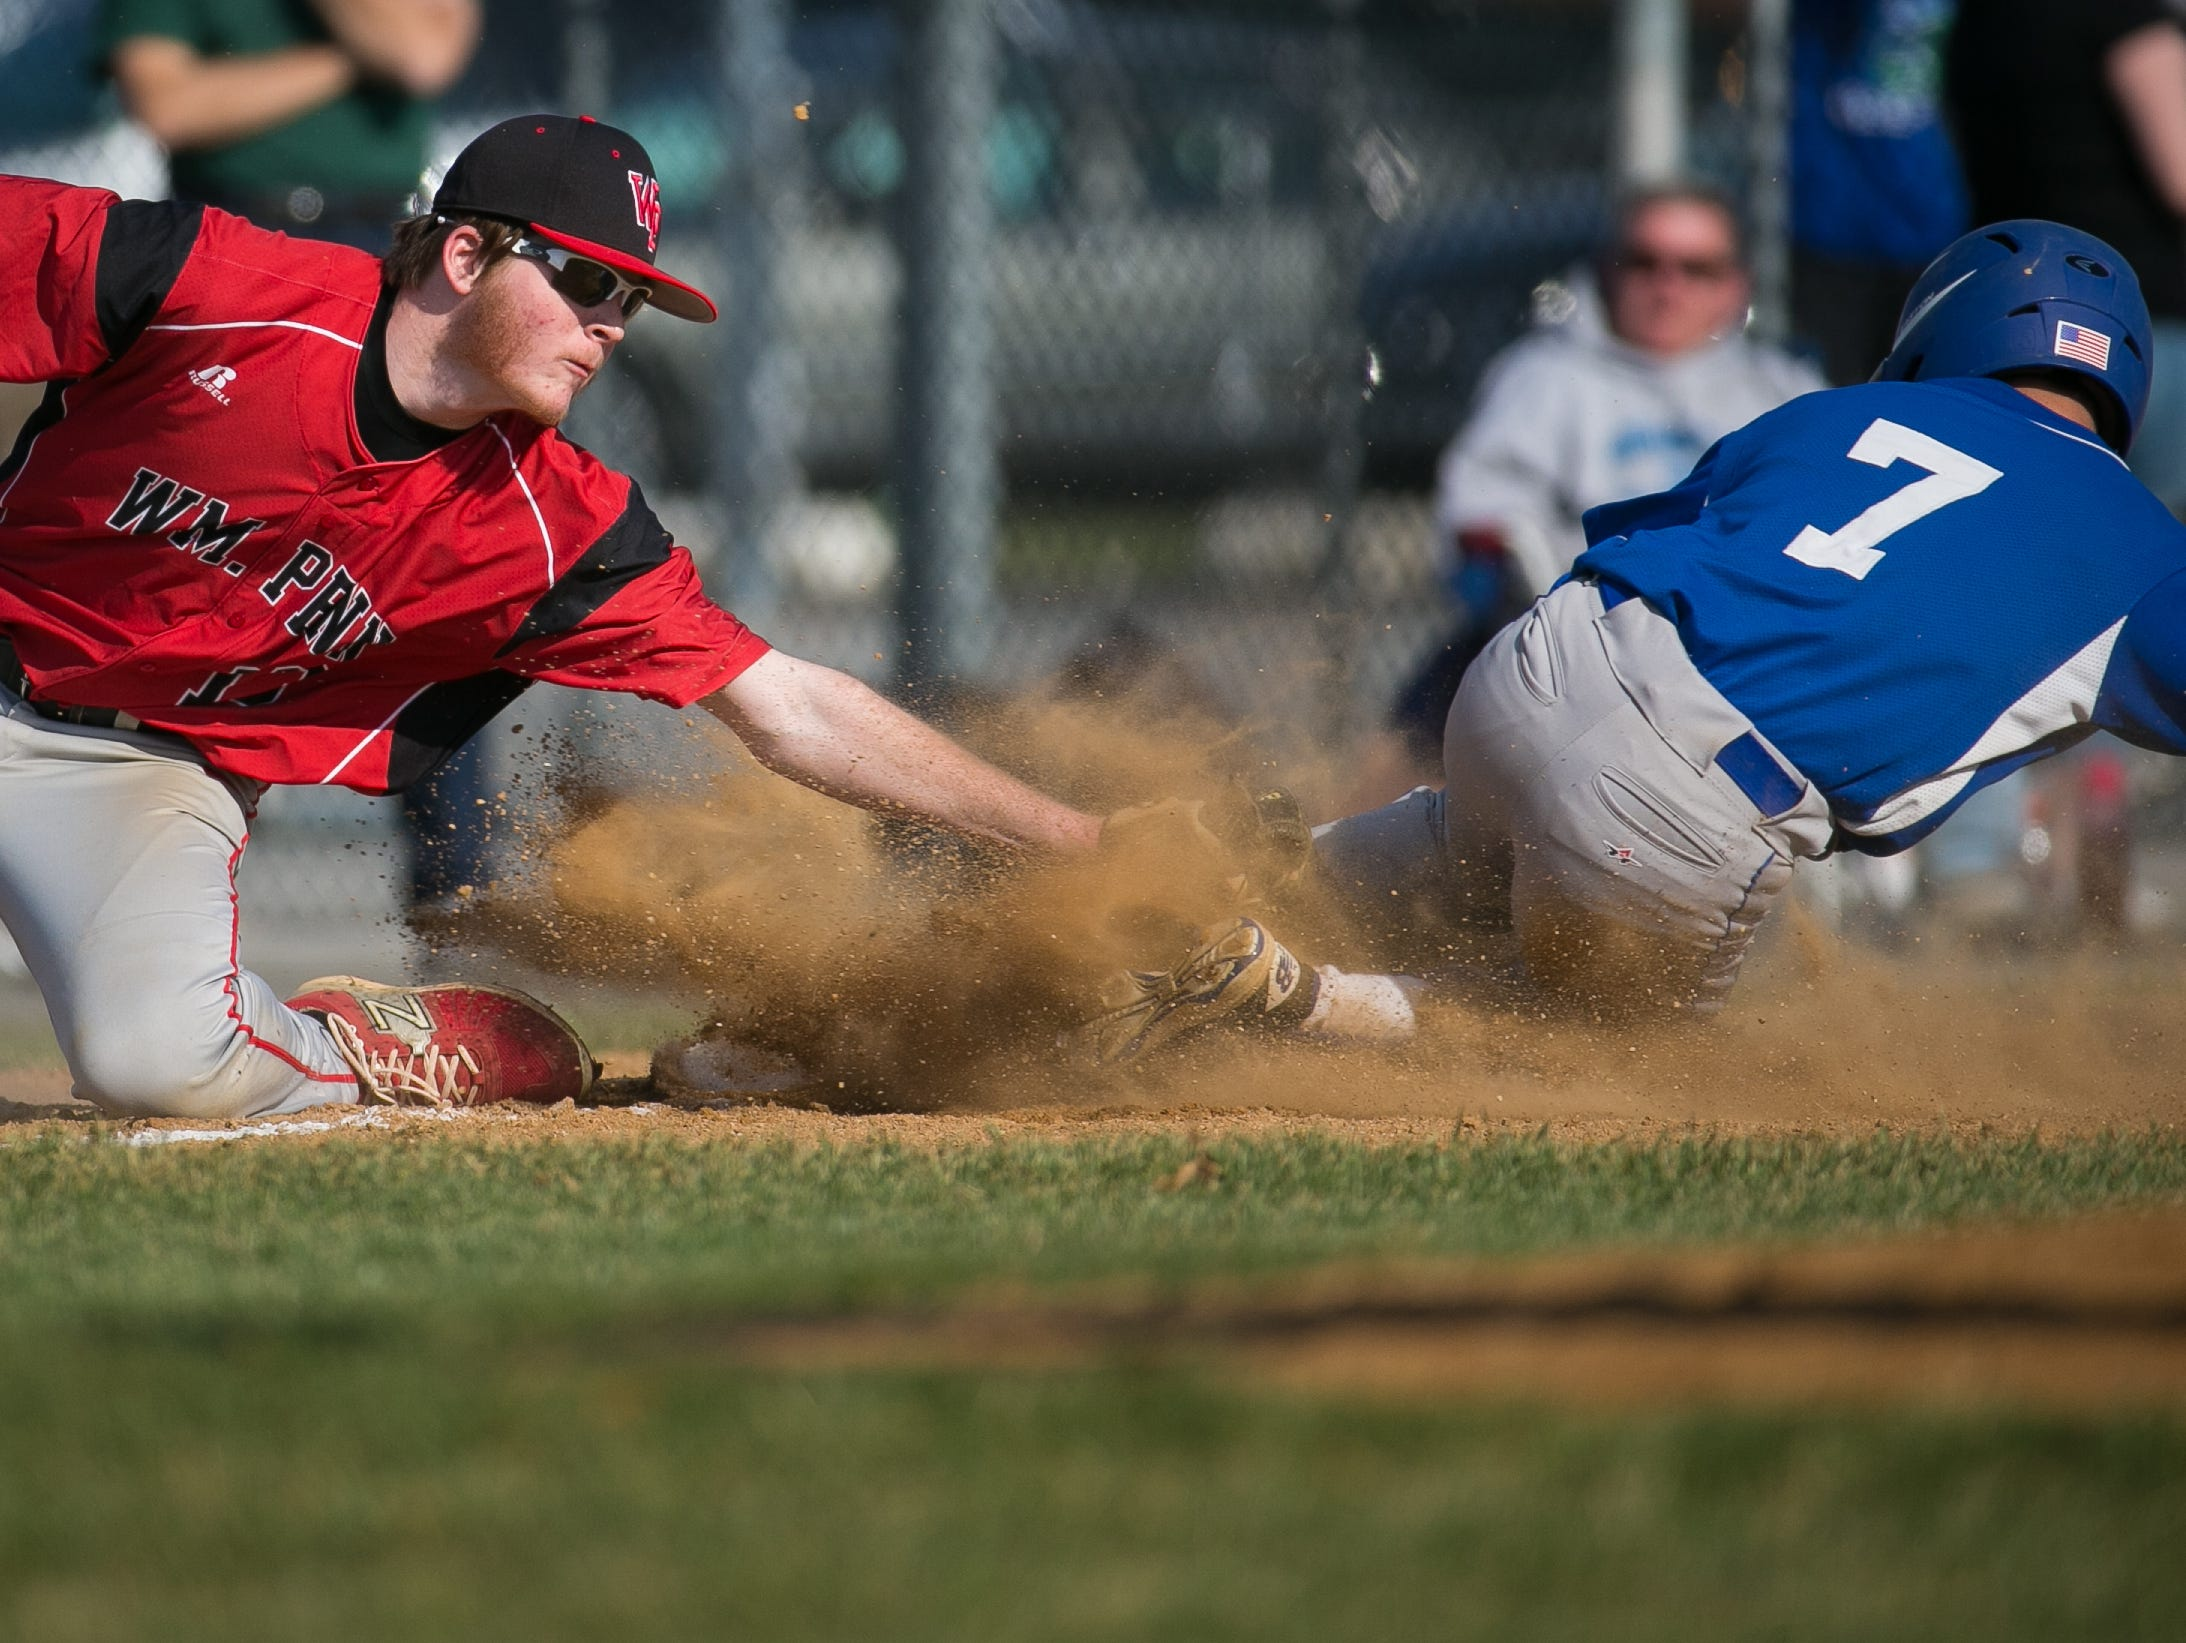 Dominic Durante (7) of fifth-ranked St. Georges slides safely into third as William Penn's Matthew North is late with the tag last Thursday.